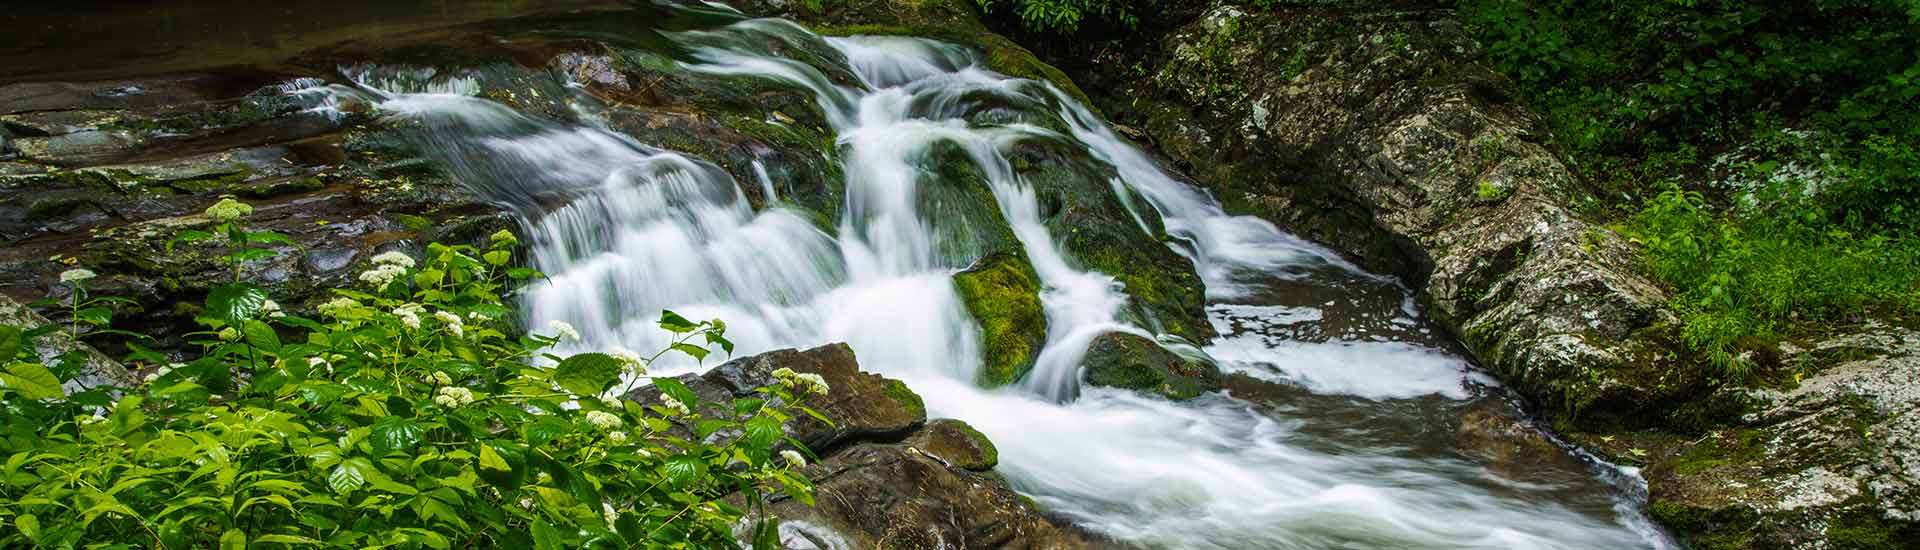 Roadside stream along Little River Scenic Road, Great Smoky Mountains National Park, TN